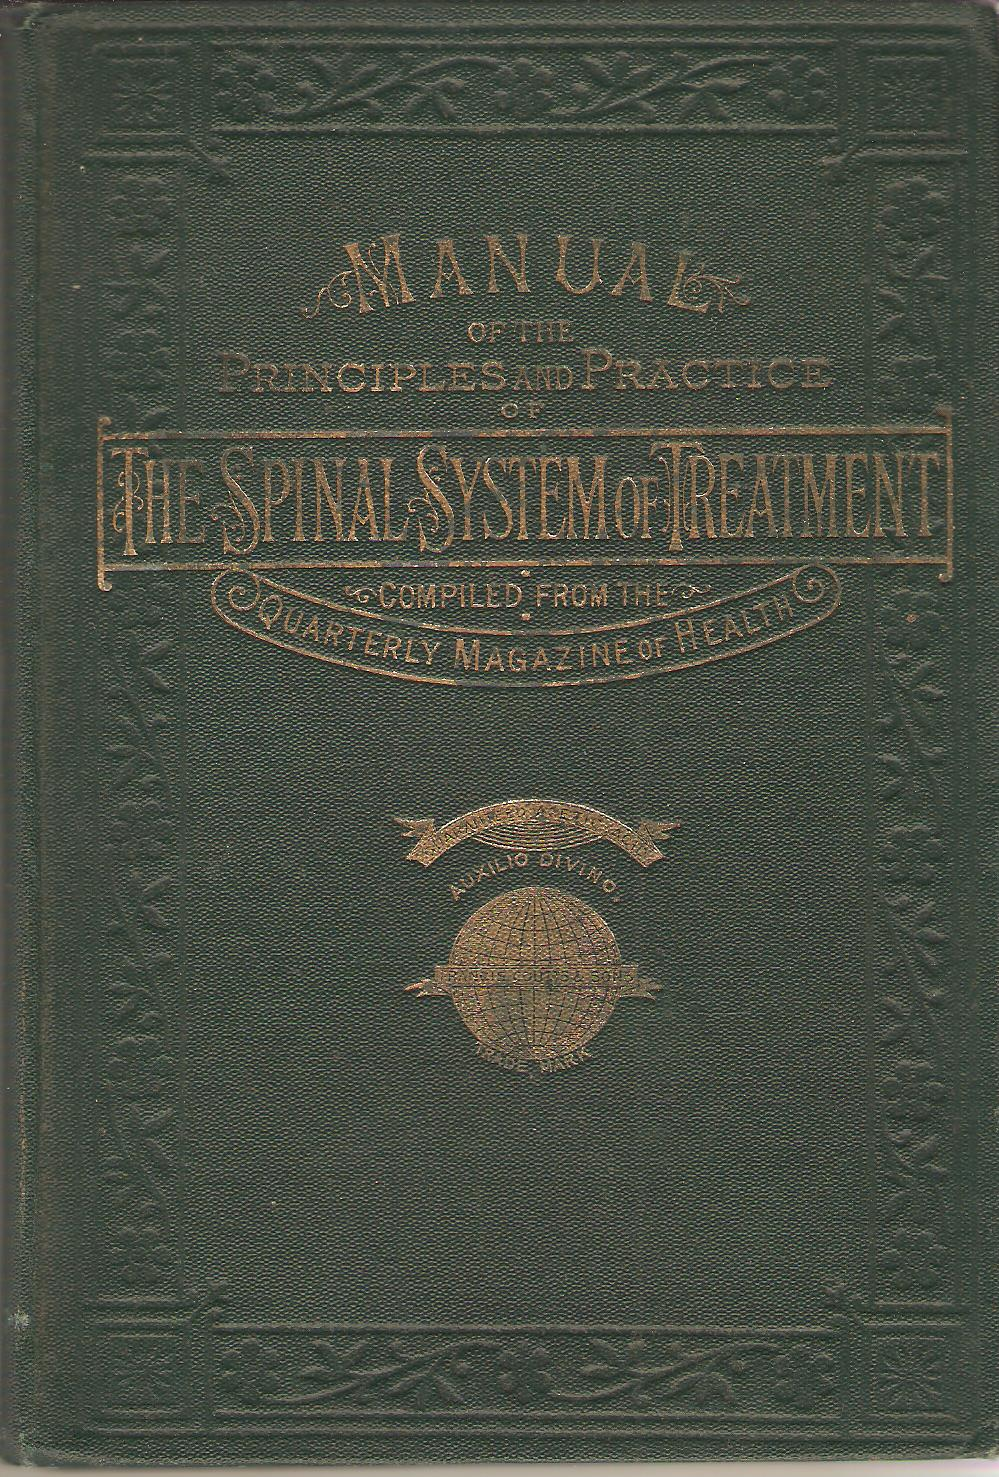 Image for Manual of the Principles and Practice The Spinal System of Treatment